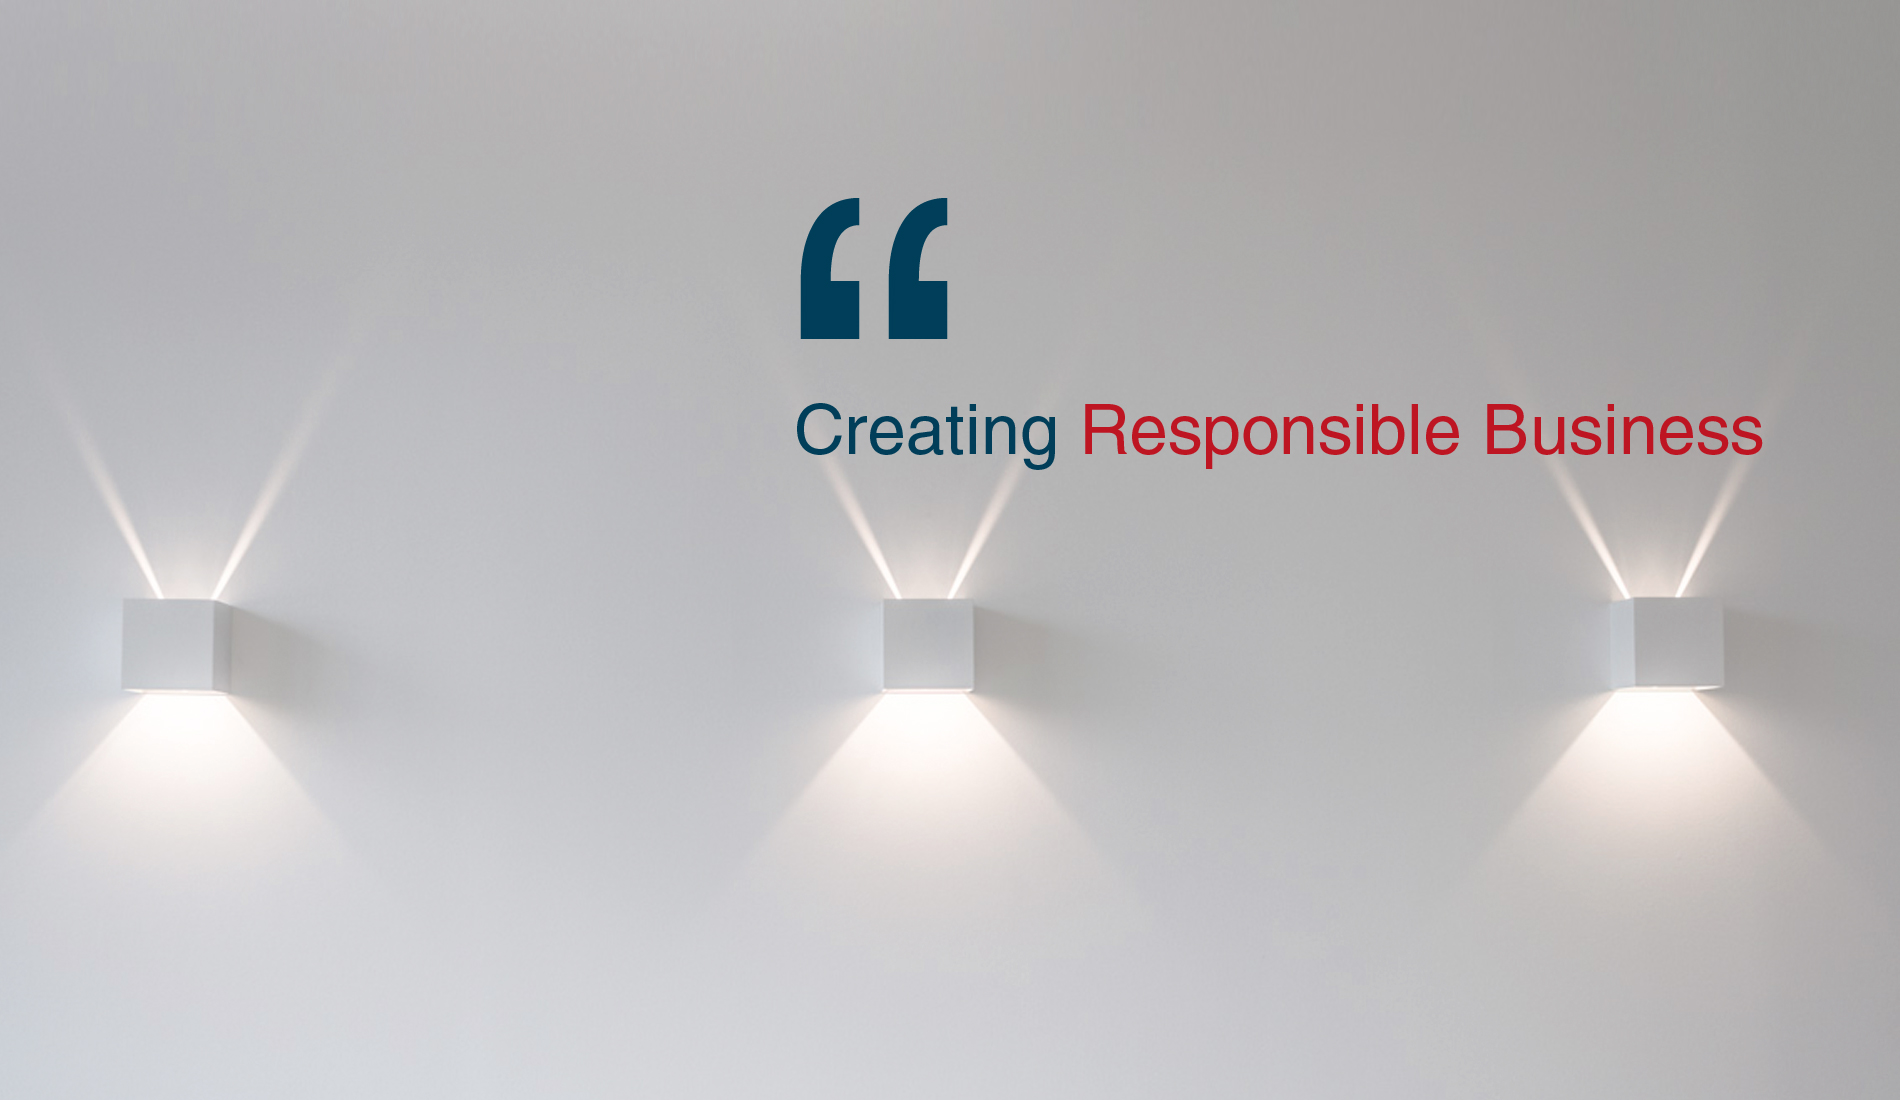 Creating Responsible Business